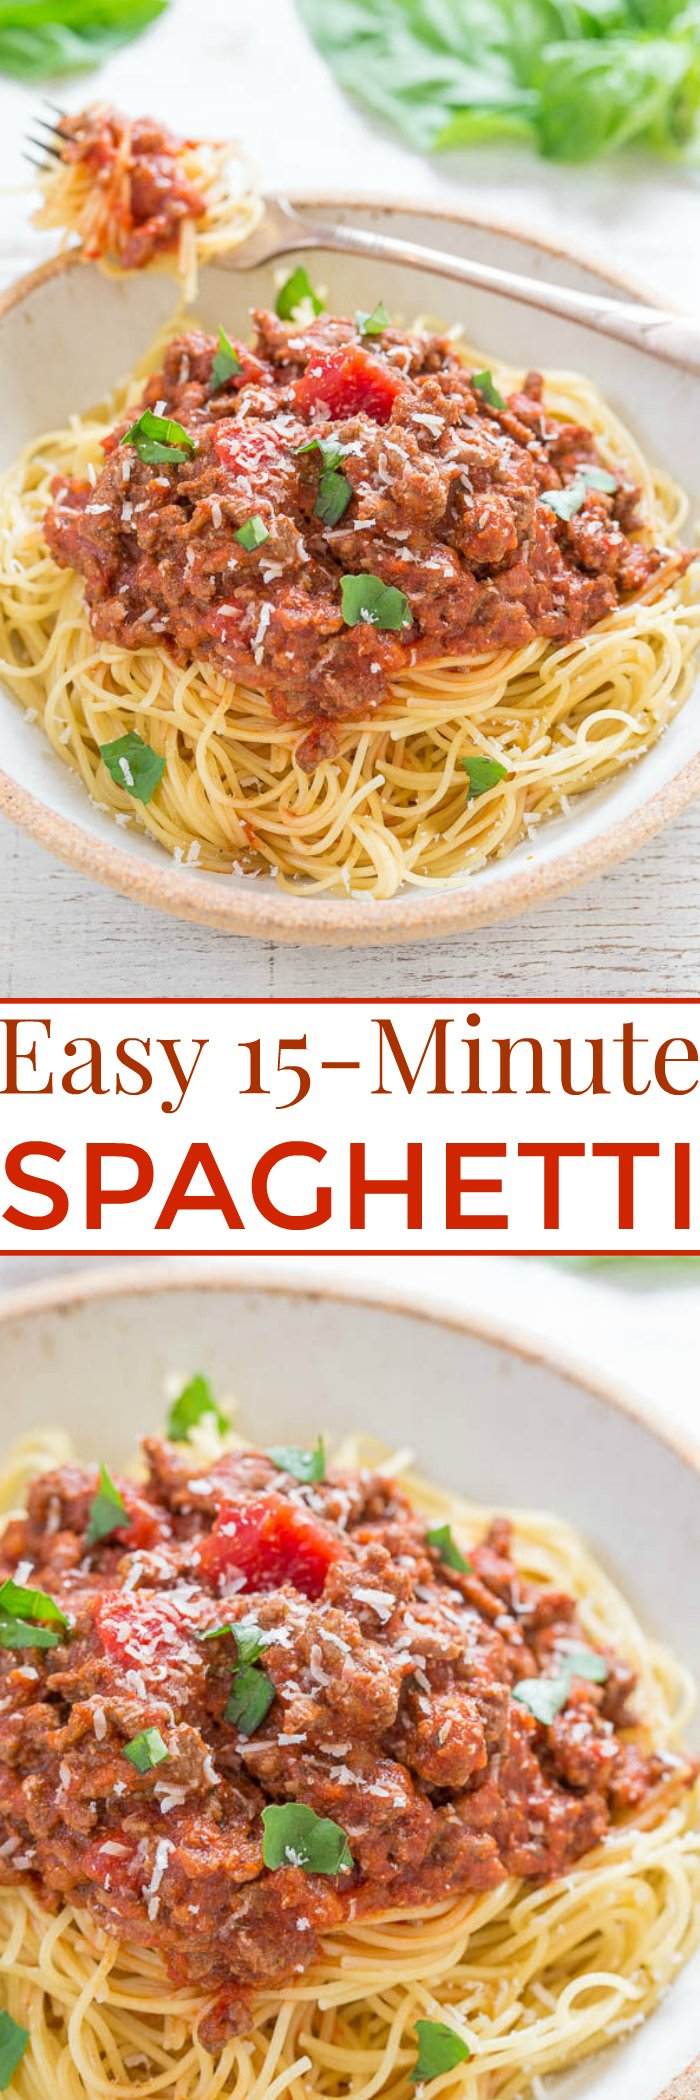 Easy 15-Minute Spaghetti - Fast, easy, full of flavor, and hearty!! Perfect for busy weeknights when you need to get dinner on the table quickly! Everyone loves spaghetti!!